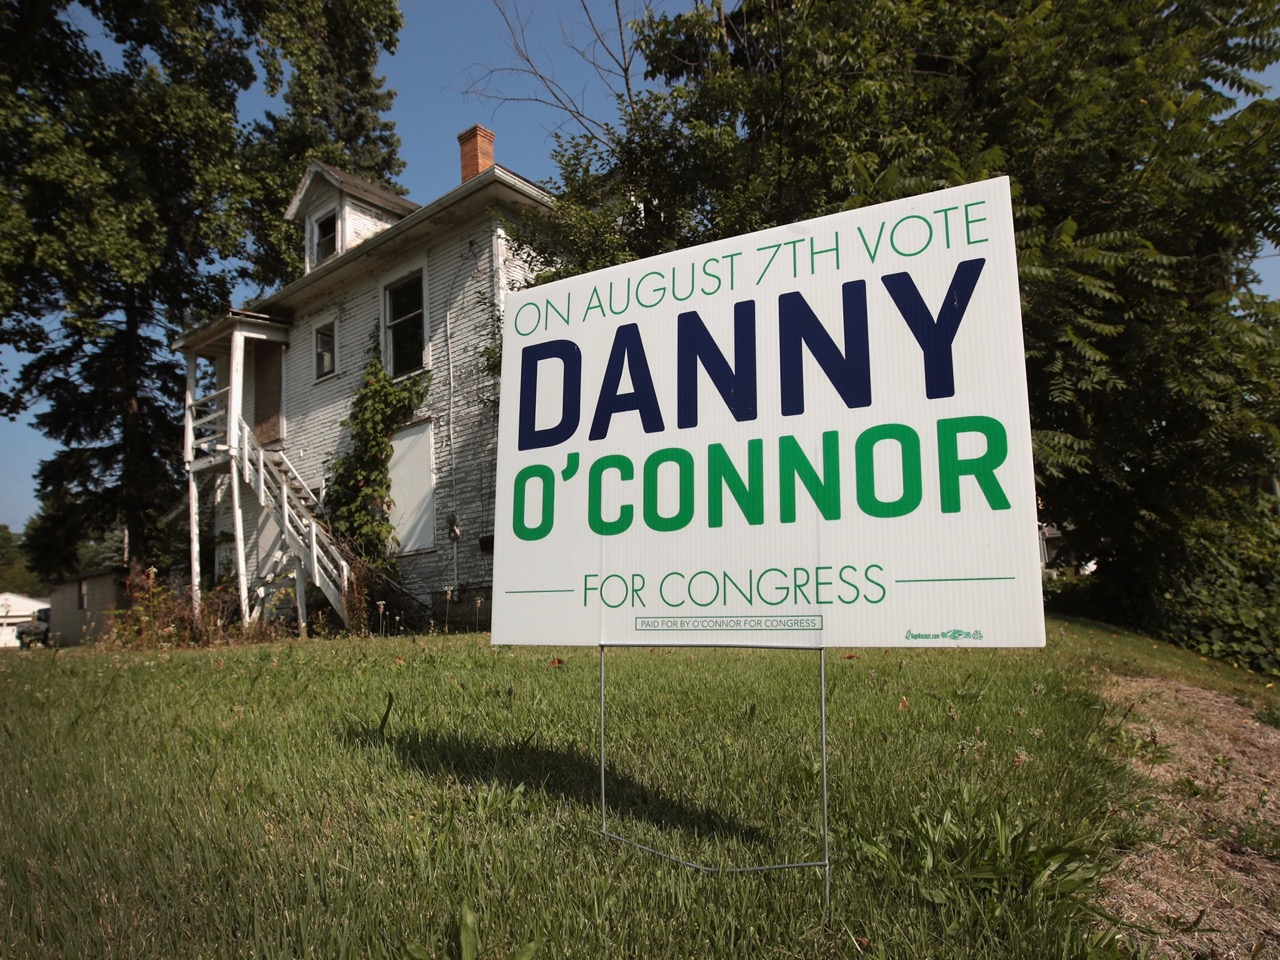 Democratic Congressional Candidate Danny O'Connor Campaigns Before OH Special Election